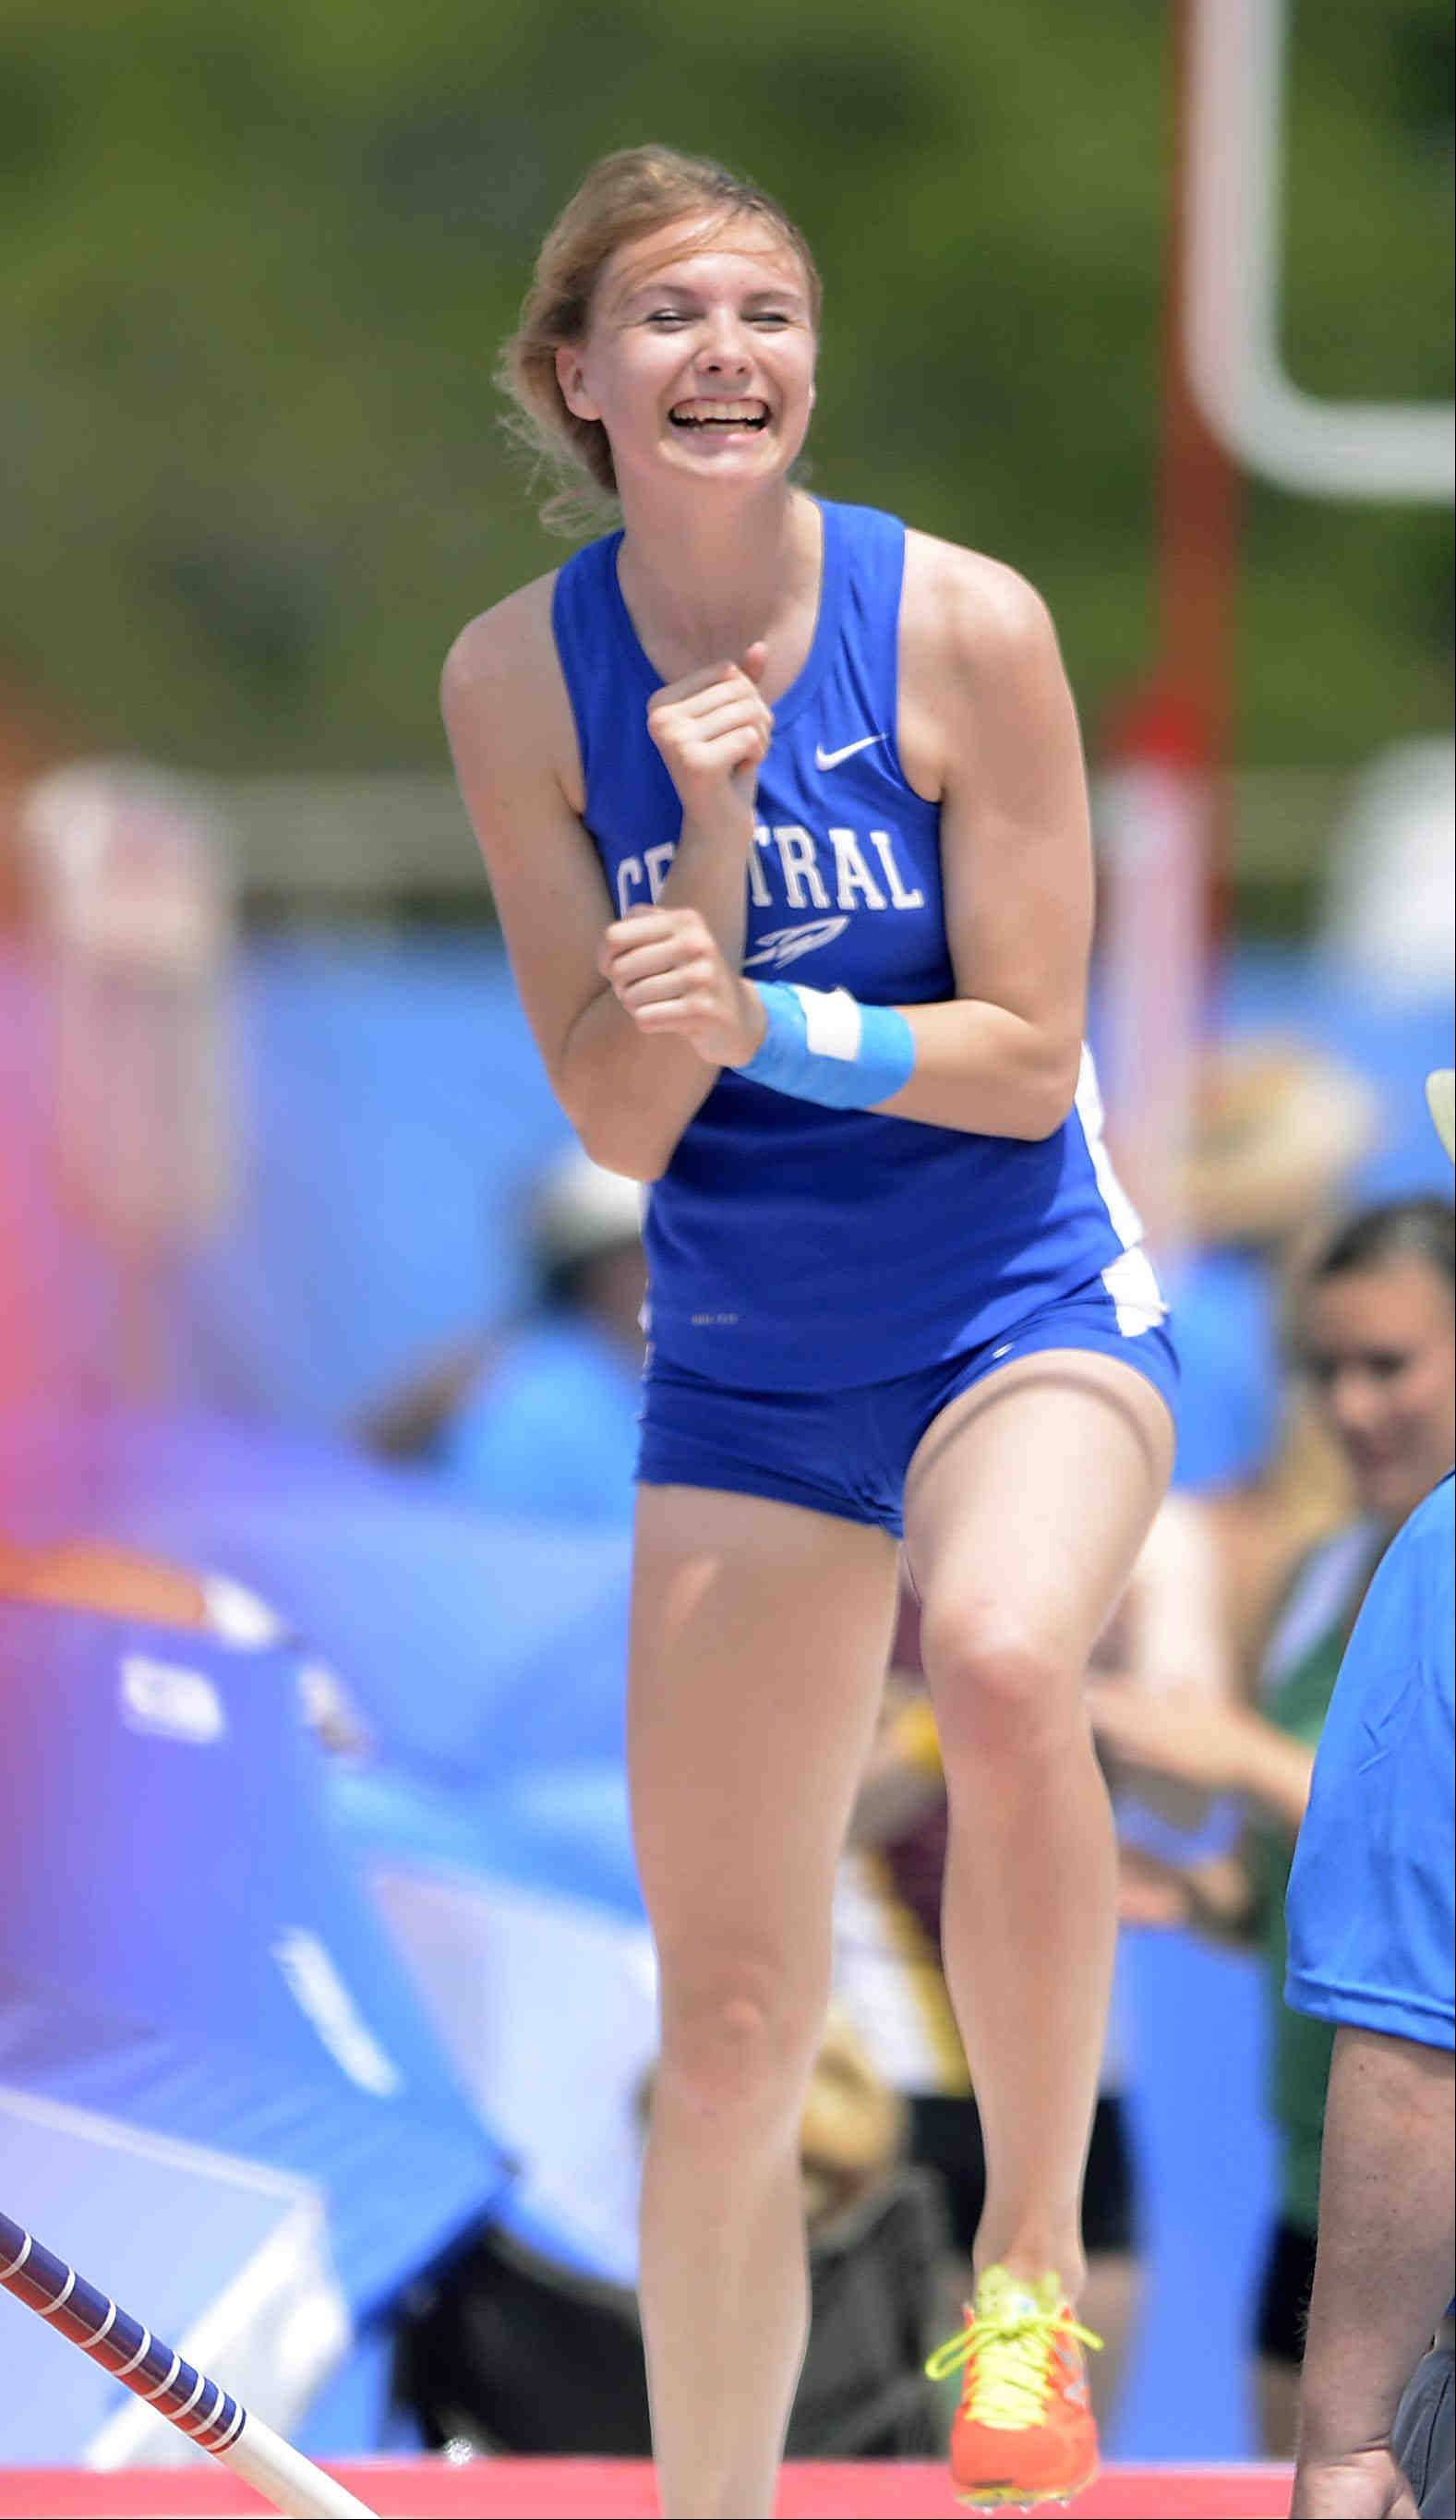 Burlington Central's Katie Trupp reacts to her second place finish in the pole vault event Saturday at the Class 2A girls state track and field finals in Charleston.